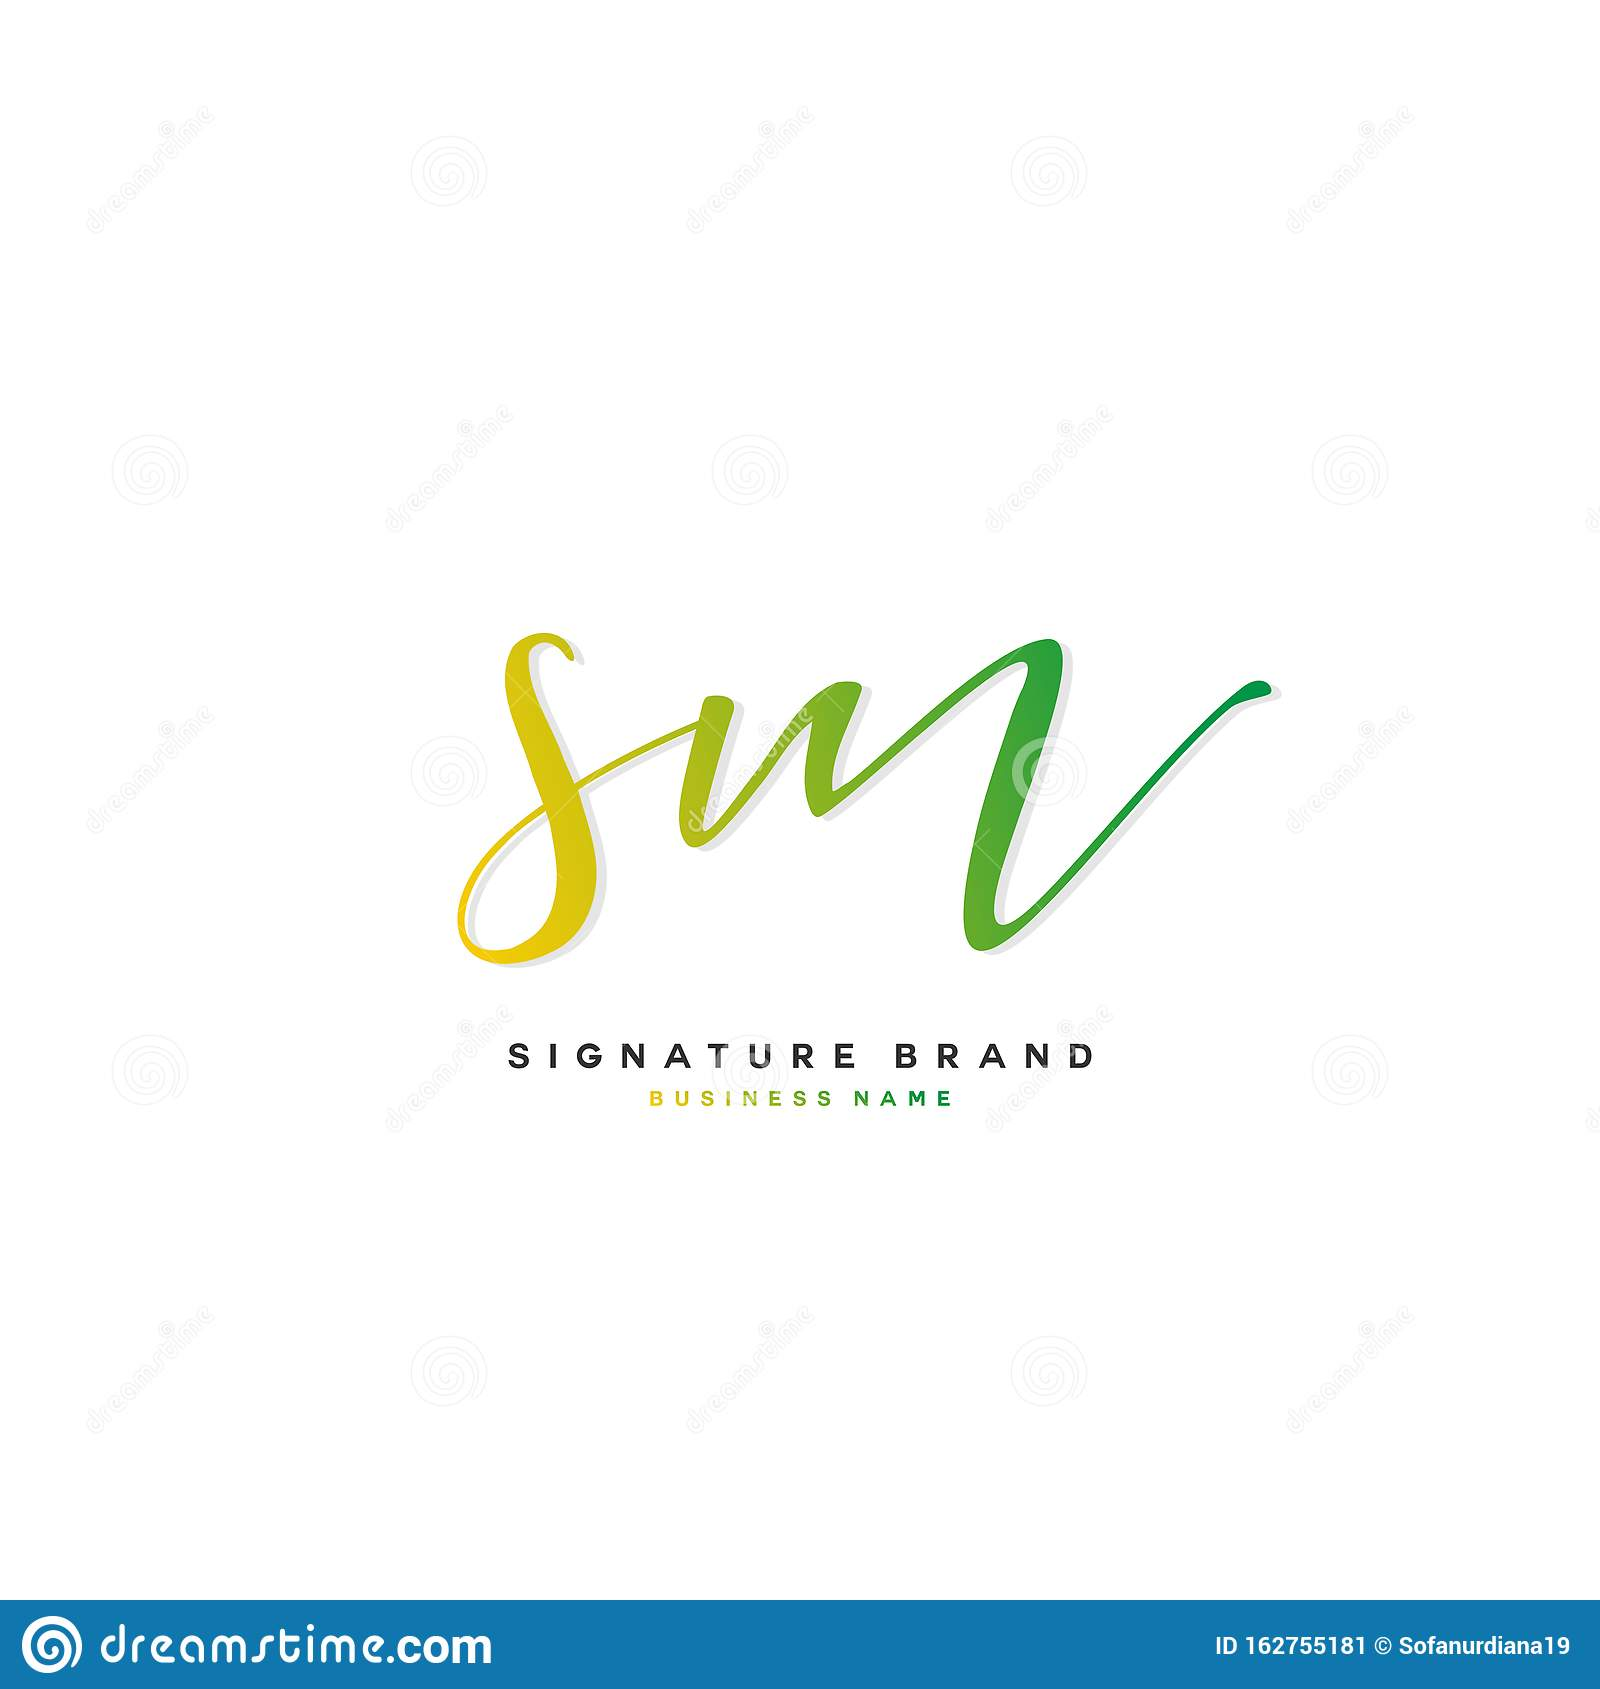 S M Sm Initial Letter Handwriting And Signature Logo Concept Design Stock Vector Illustration Of Vector Template 162755181